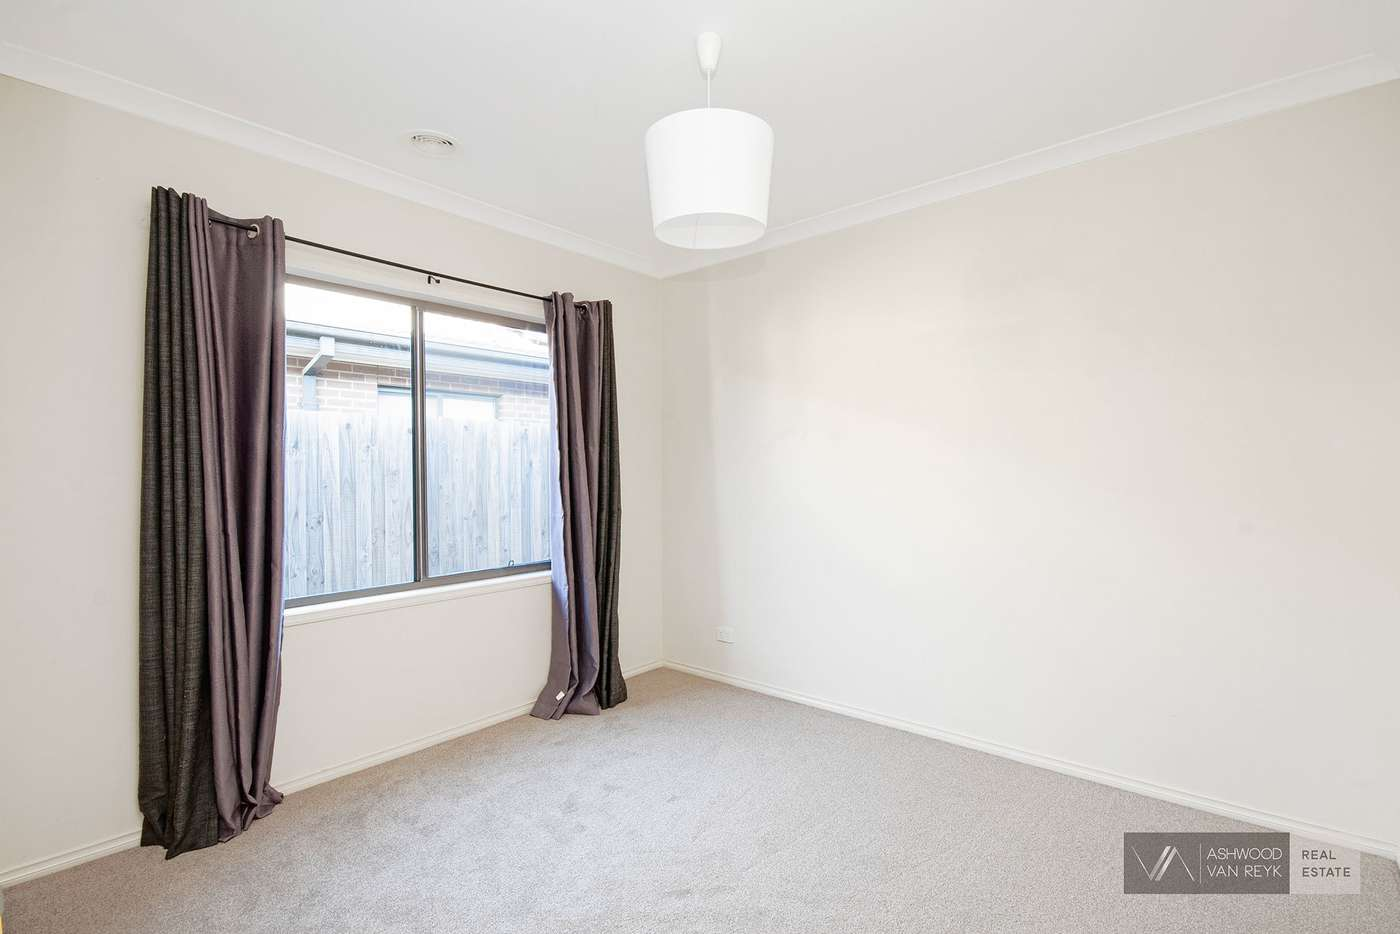 Sixth view of Homely house listing, 70 Flinns Rd, Eastwood VIC 3875